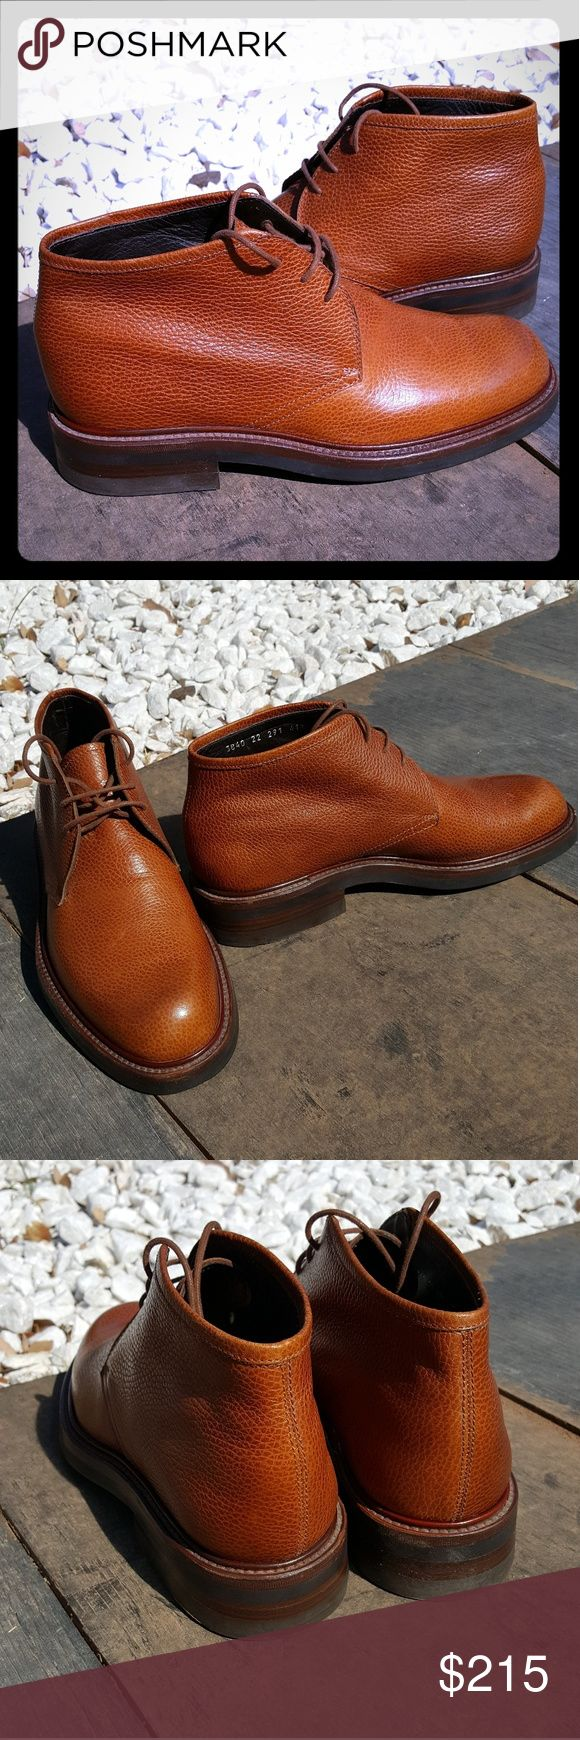 Barneys New York Brown Chukka Boots 8.5 (41.5) These brown chukka boots made by Barneys New York are in pristine shape. These are high quality leather boots and only worn once ever. The leather has been well taken care of and are simply amazing Barneys New York Shoes Chukka Boots